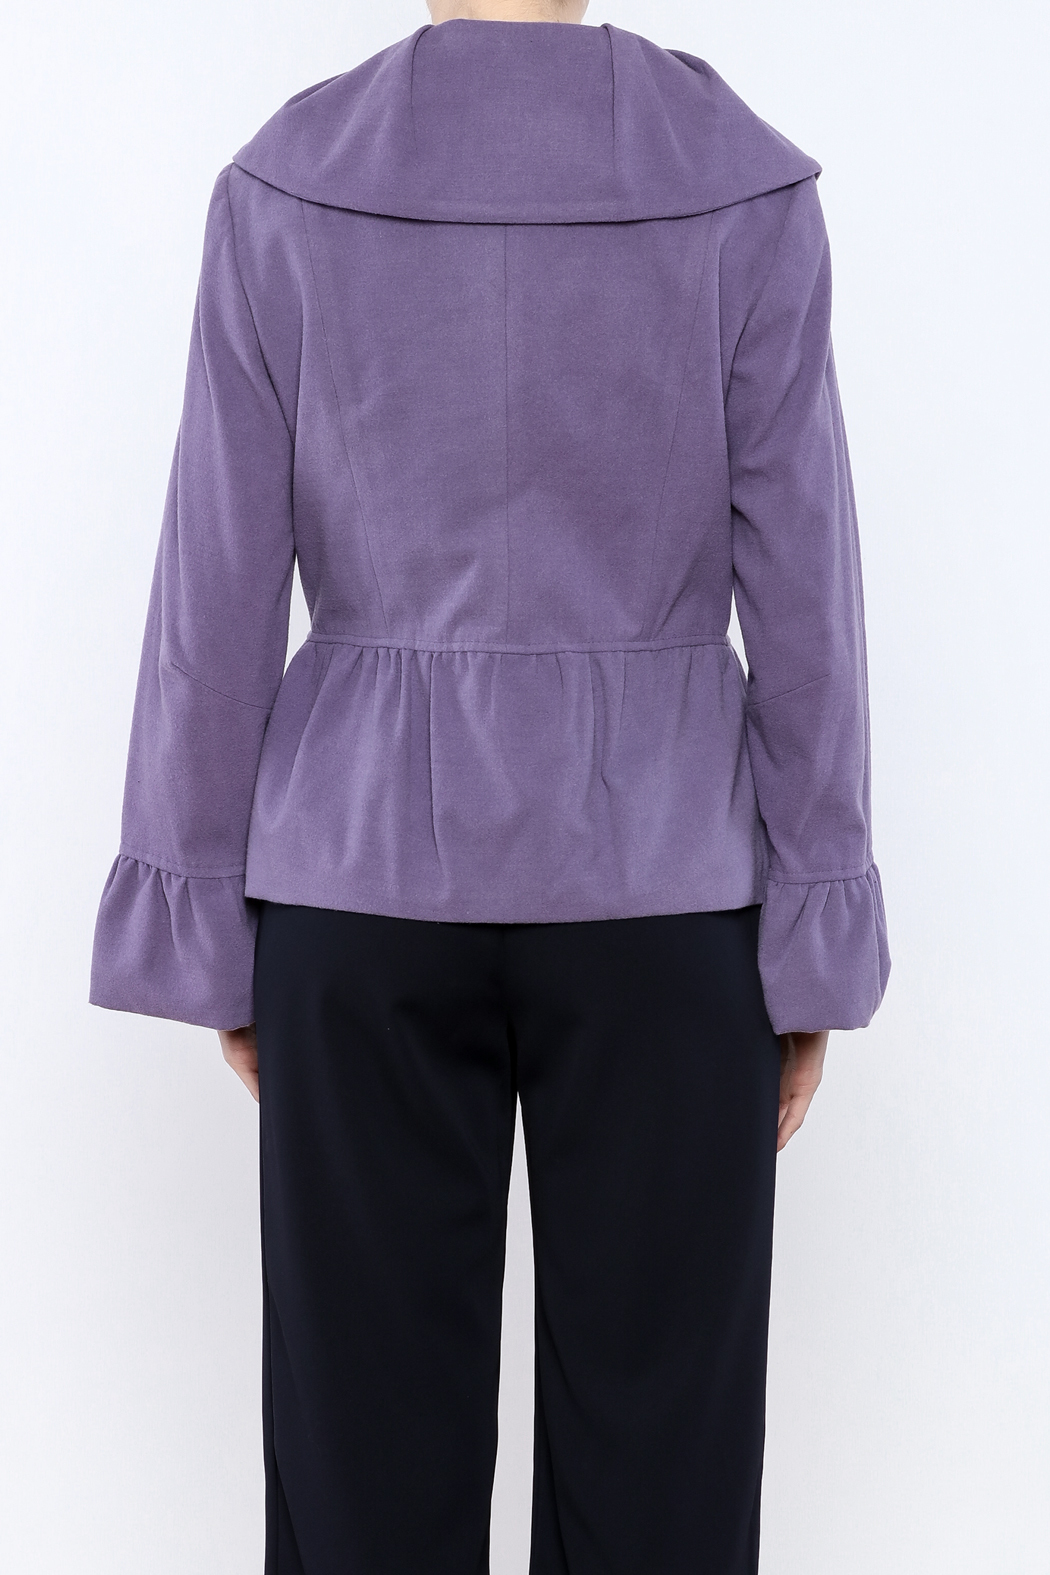 INSIGHT NYC Lavender Peacoat - Back Cropped Image